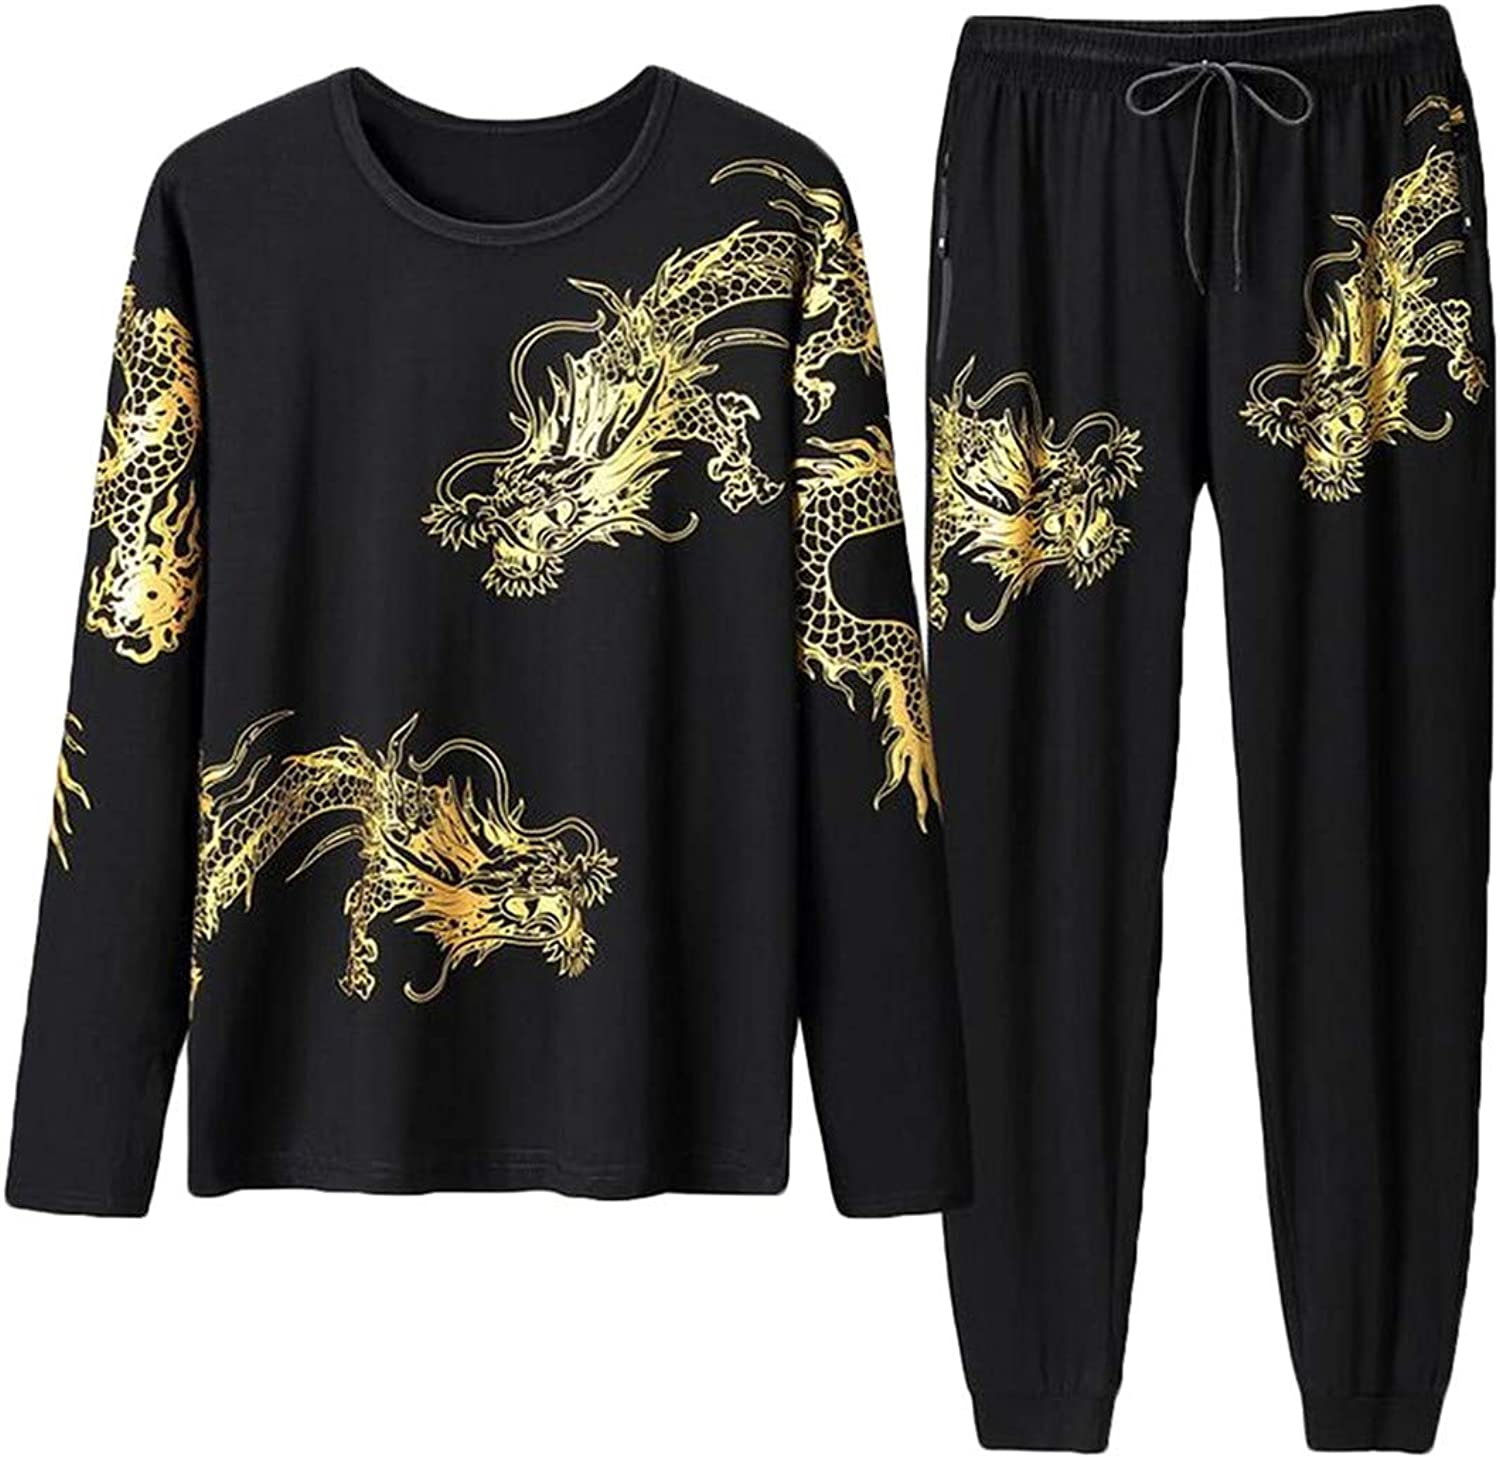 BYWX Men Big & Tall Long Sleeve Loose Fit Sweatsuit Printed Round Neck Tracksuits